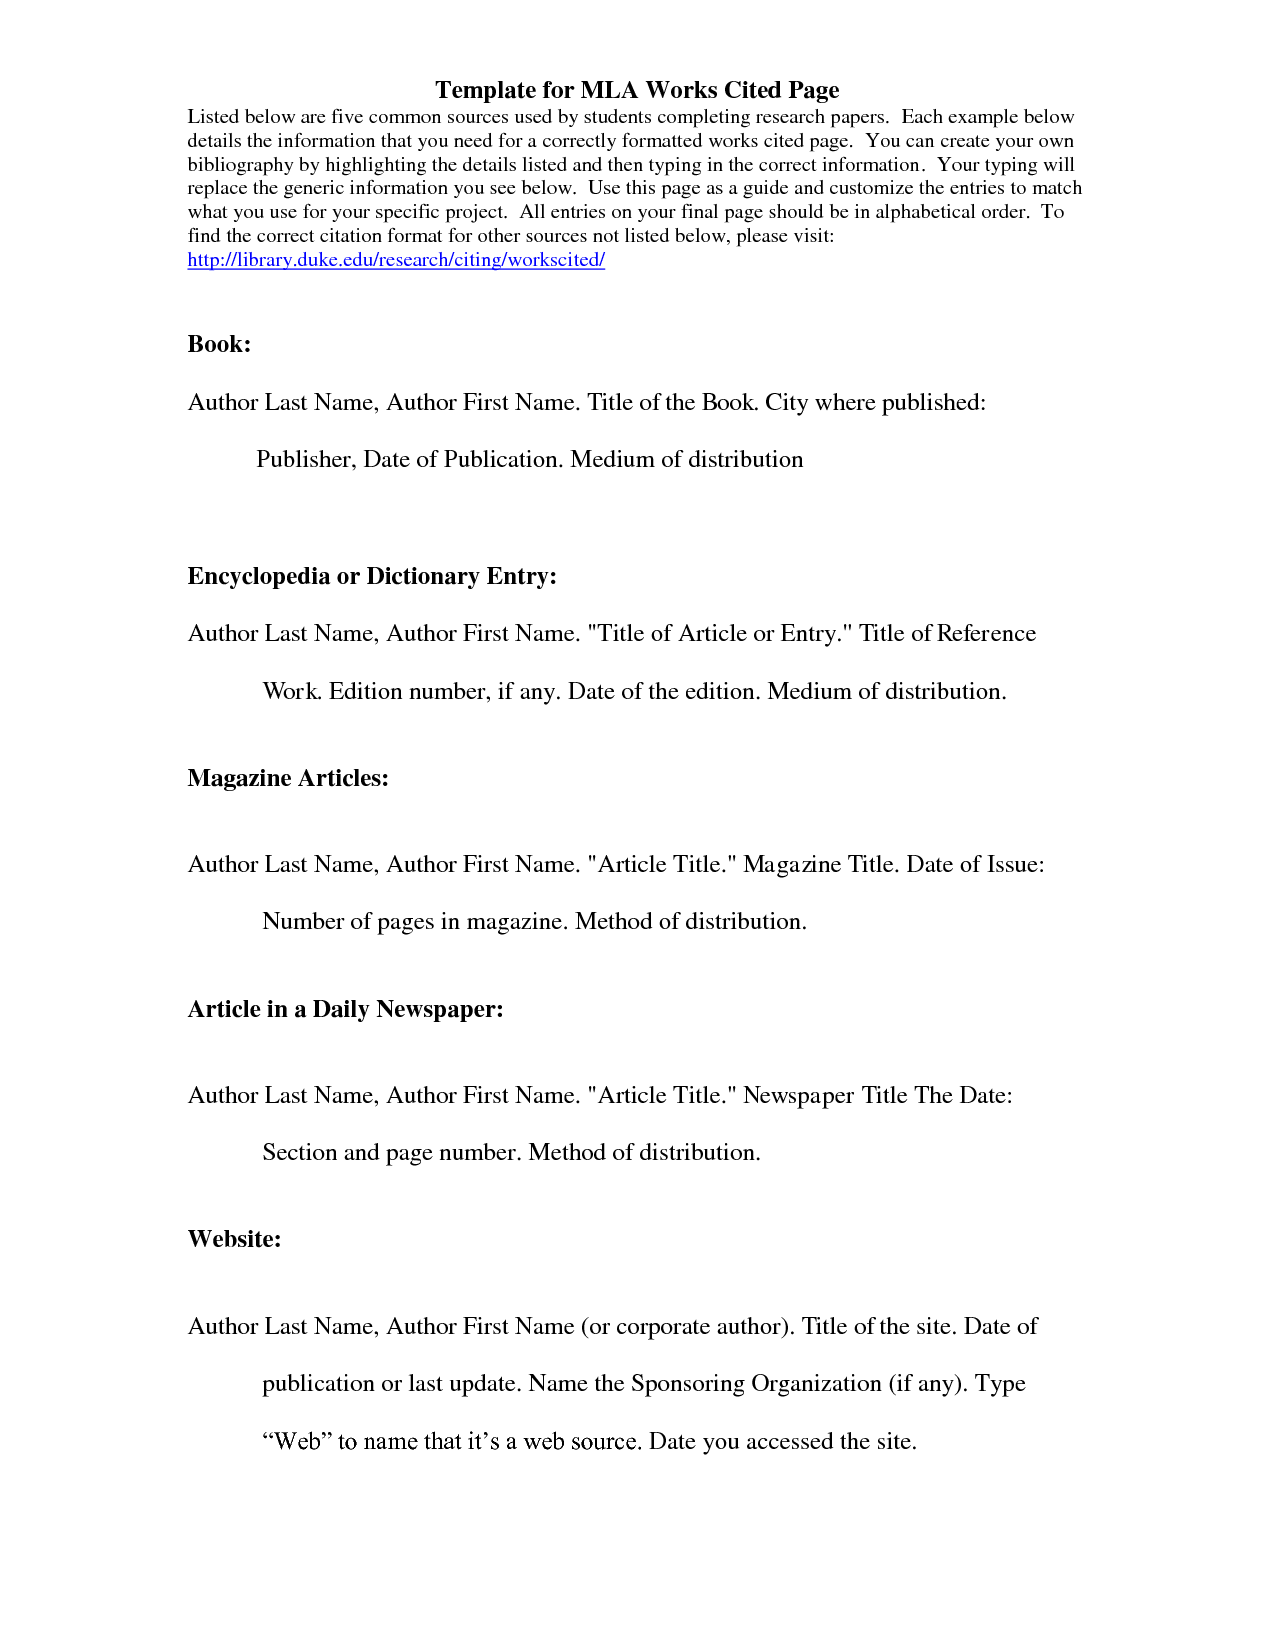 mla works cited essay mla citation template template for mla works cited page school